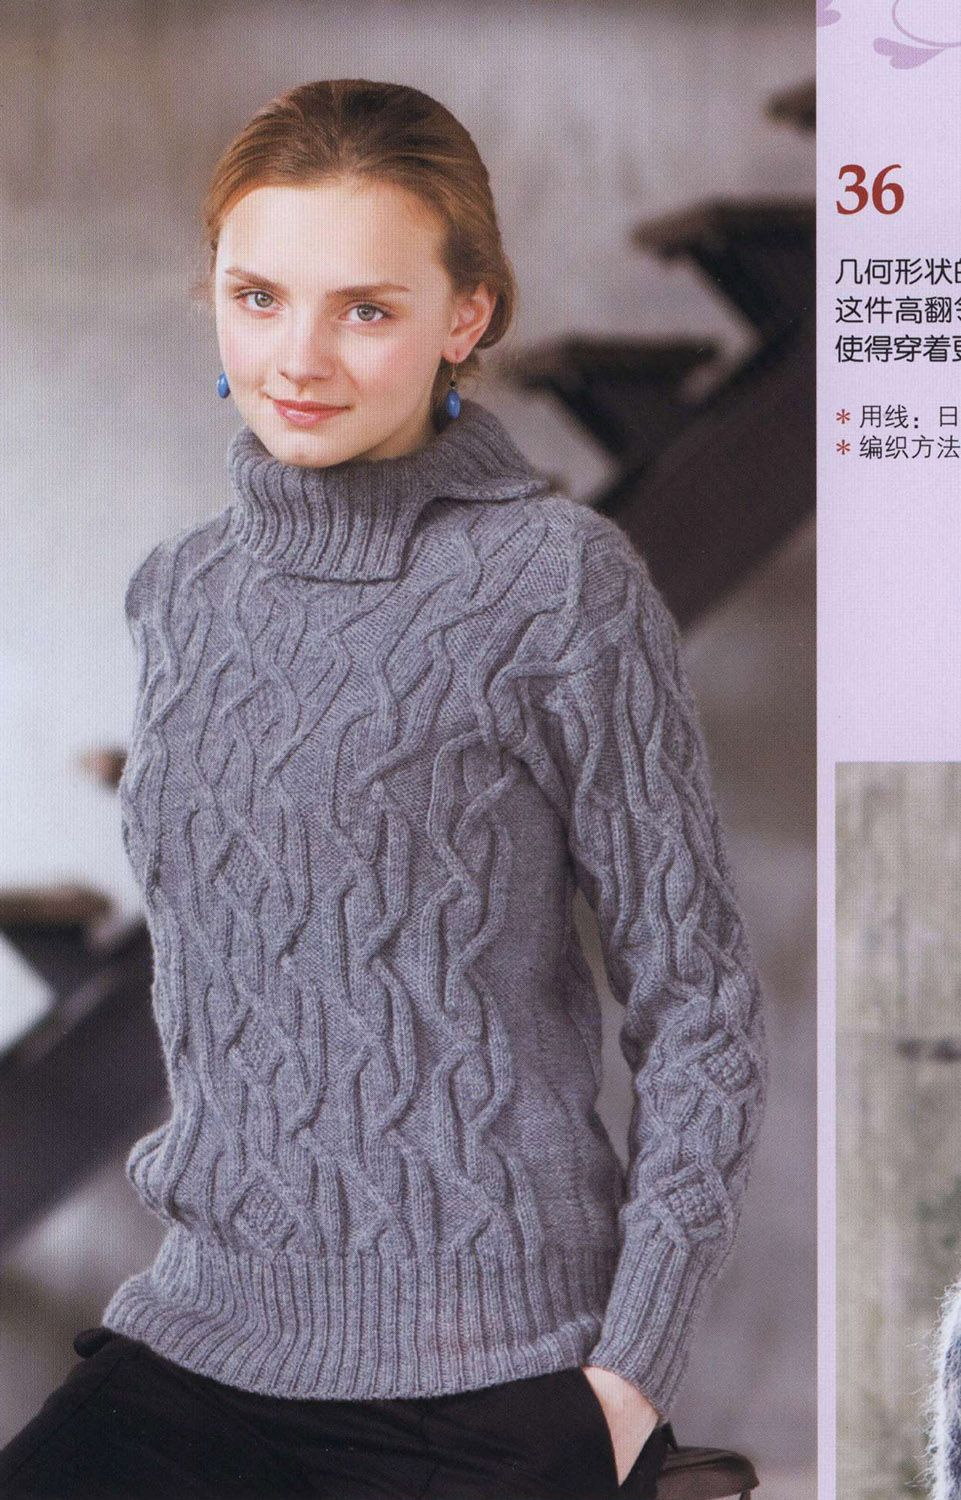 Pullover 36 Haute Couture Knitwear Japanese Knitting